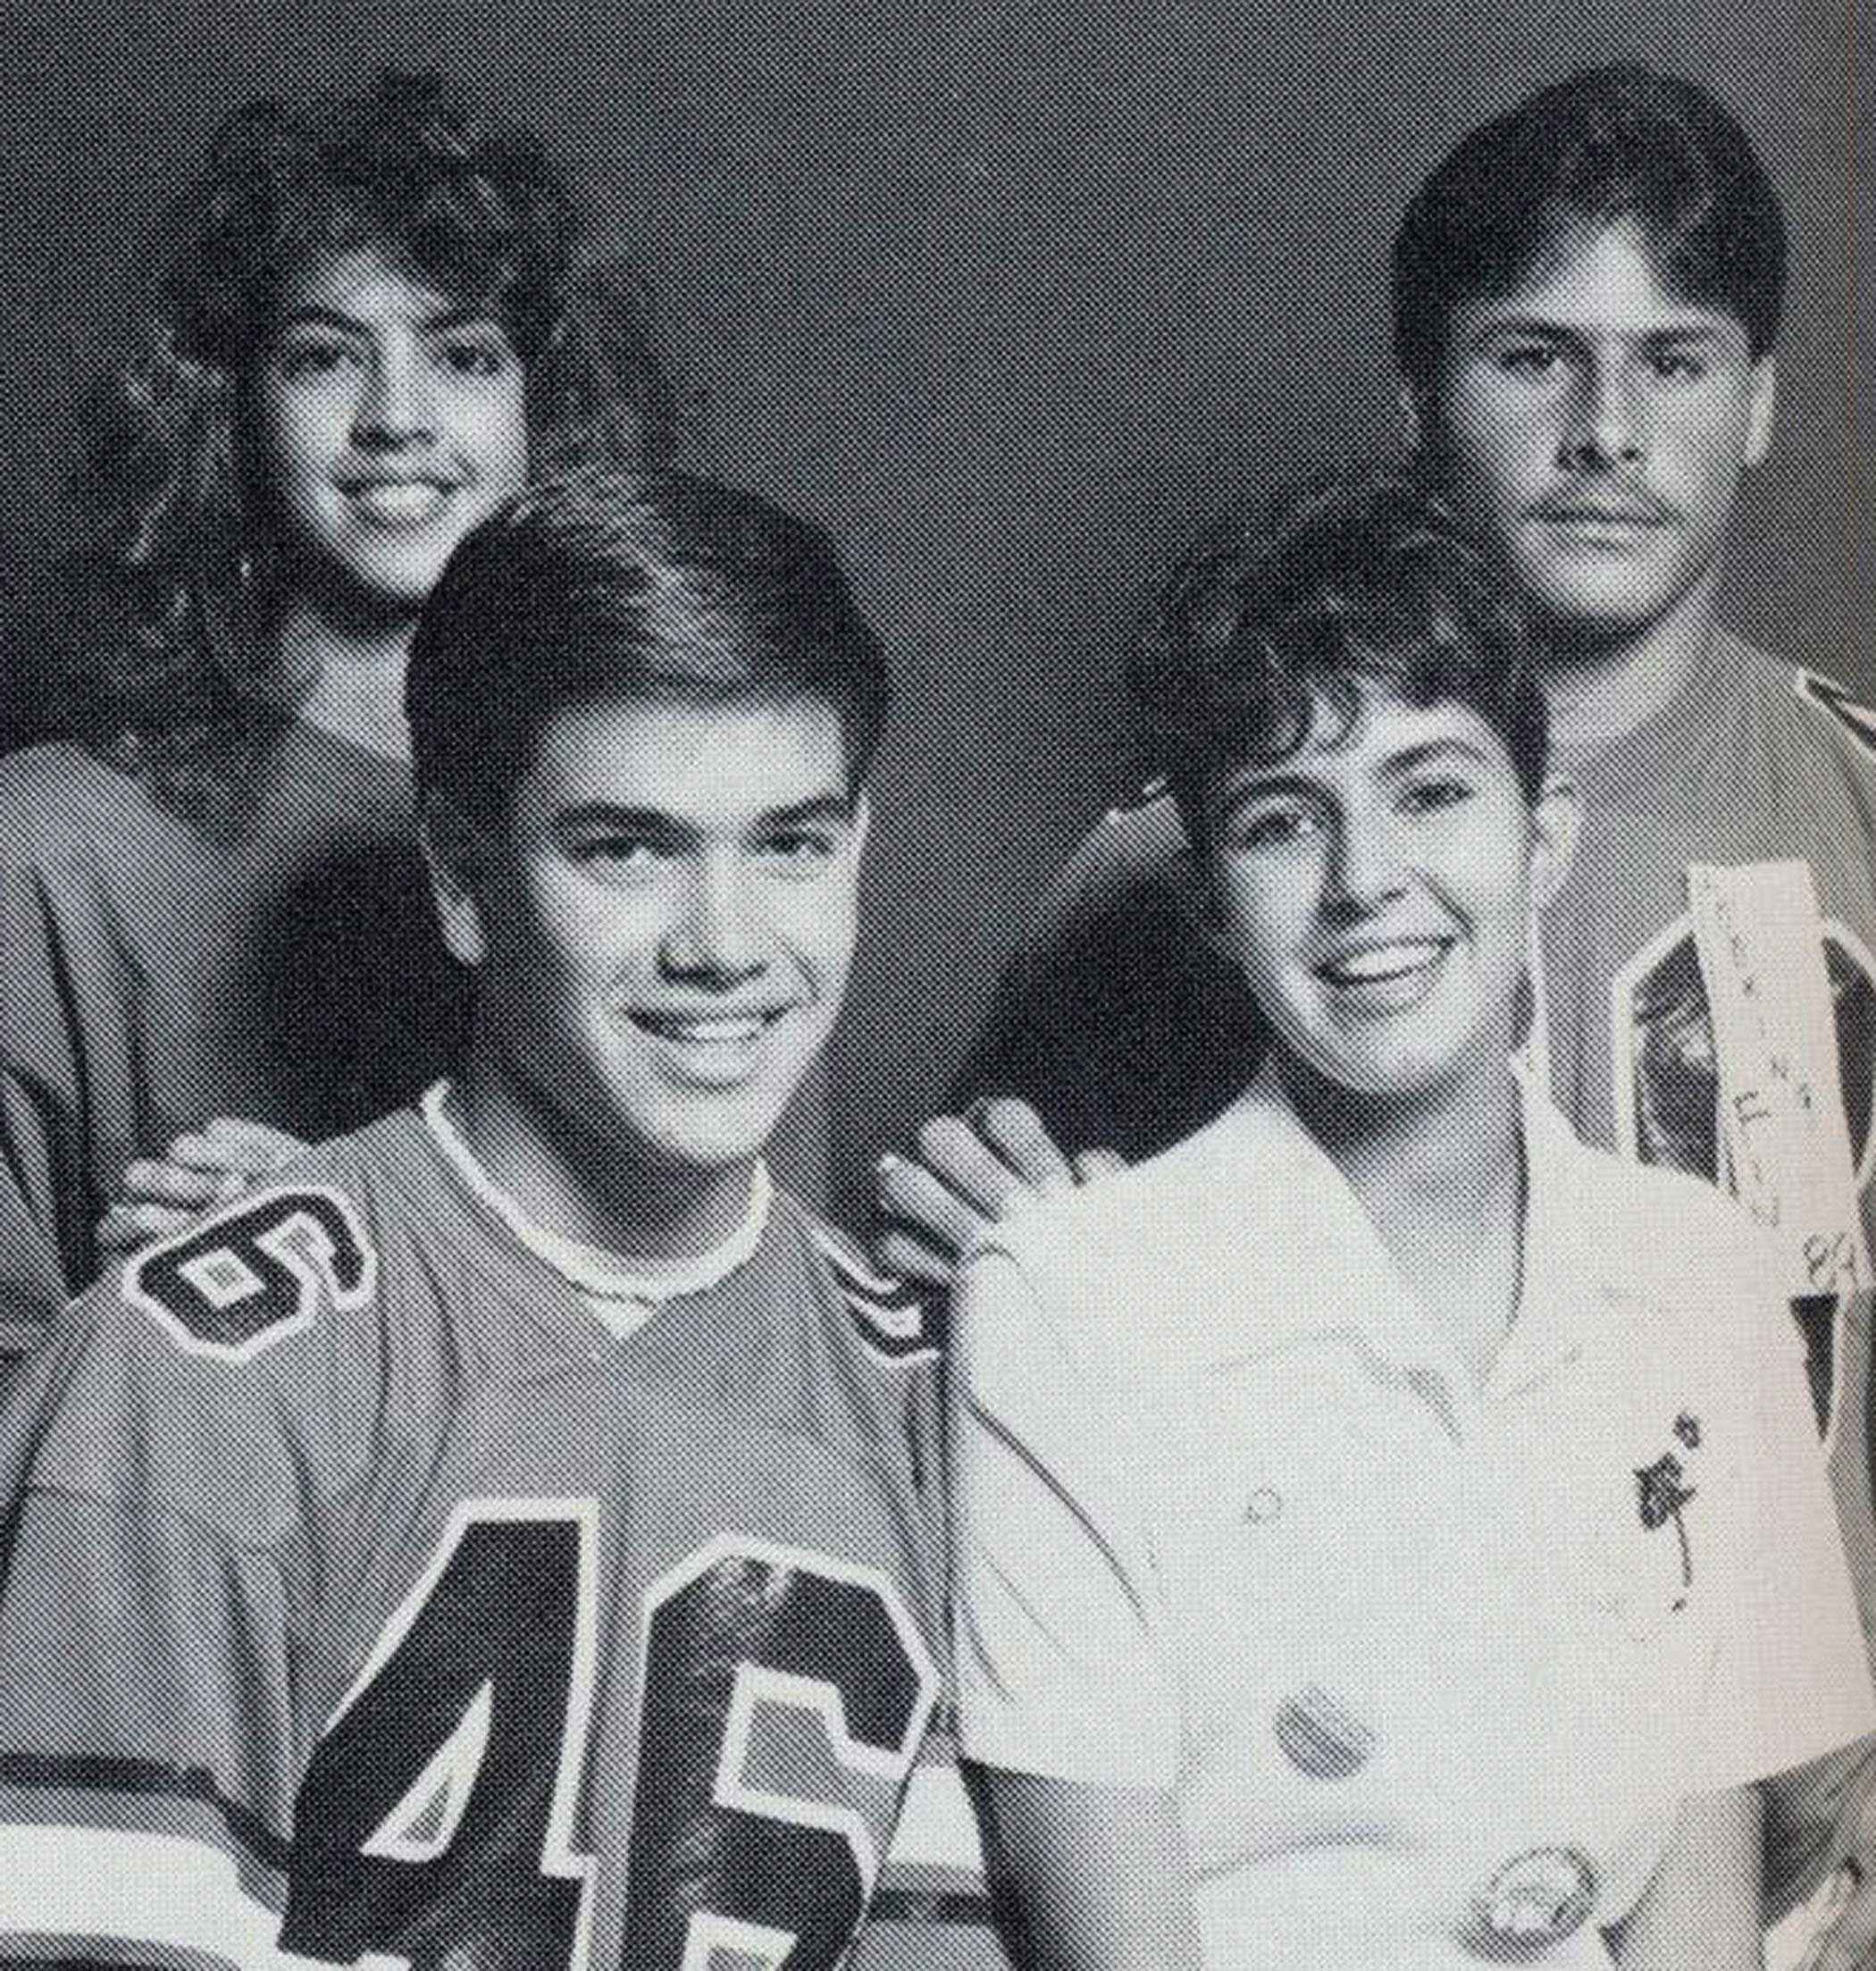 South Miami Senior High yearbook photo of Marco Rubio in 1989.